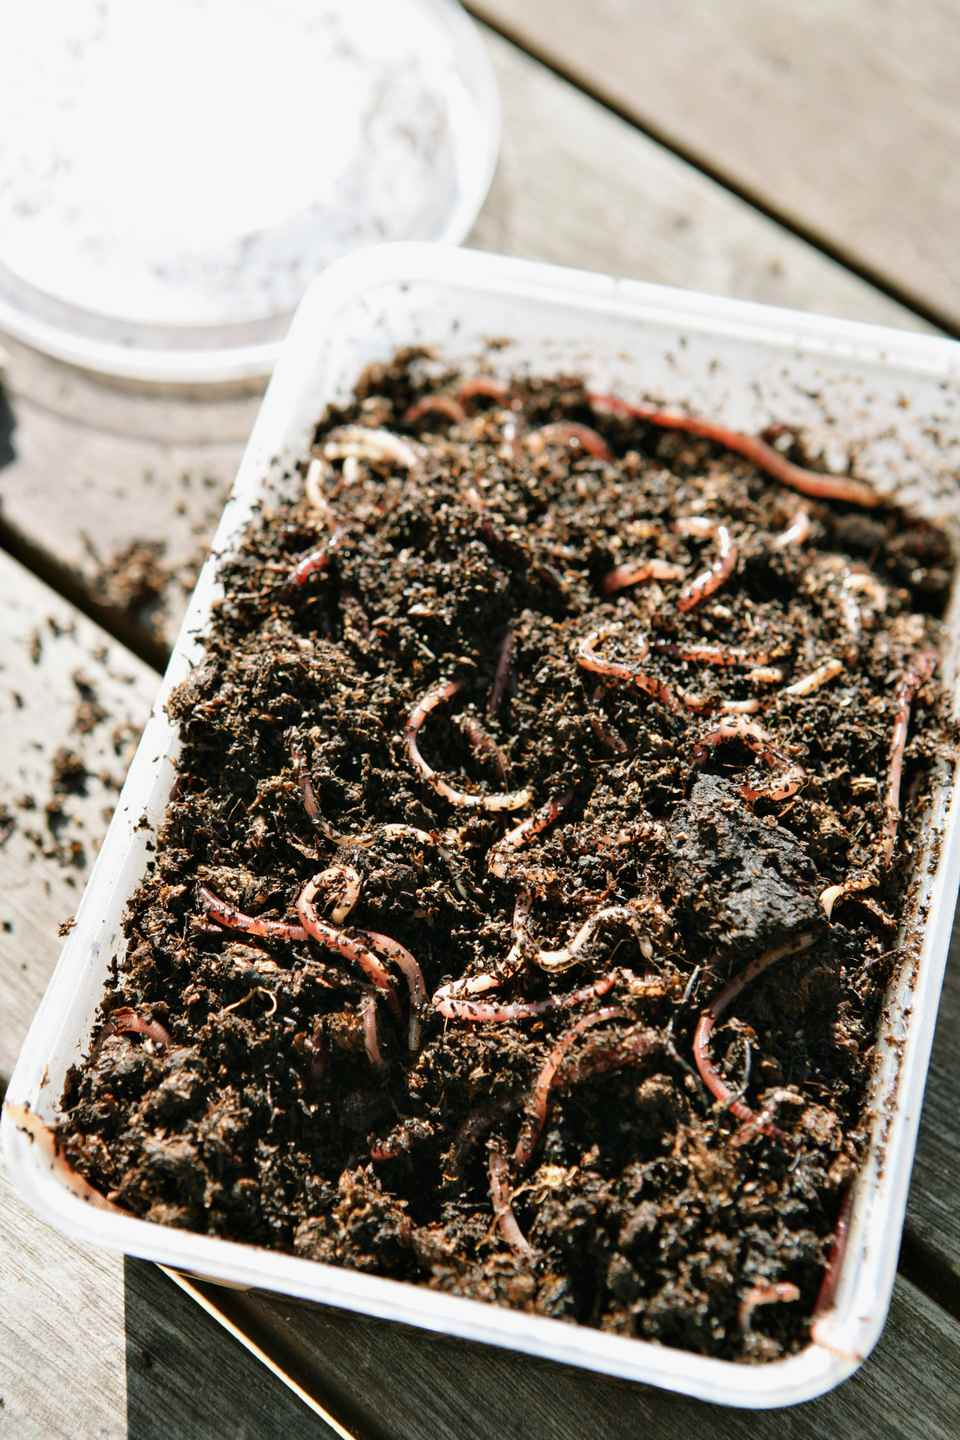 A small container full of worms and dirt